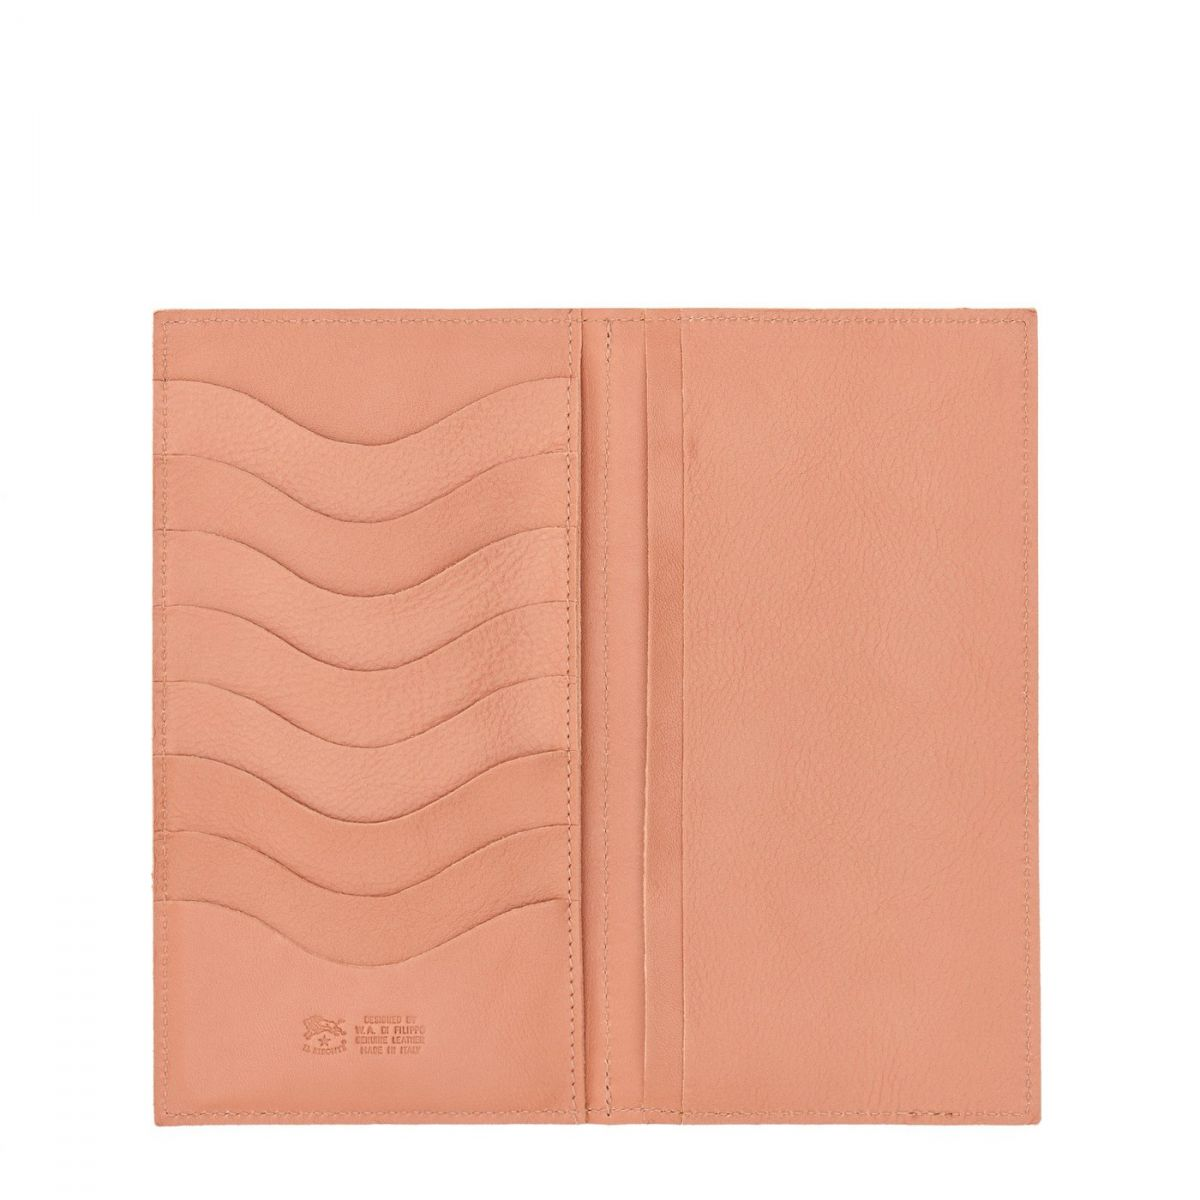 Wallet in Cowhide Leather SMW043 color Pink Pepper | Details